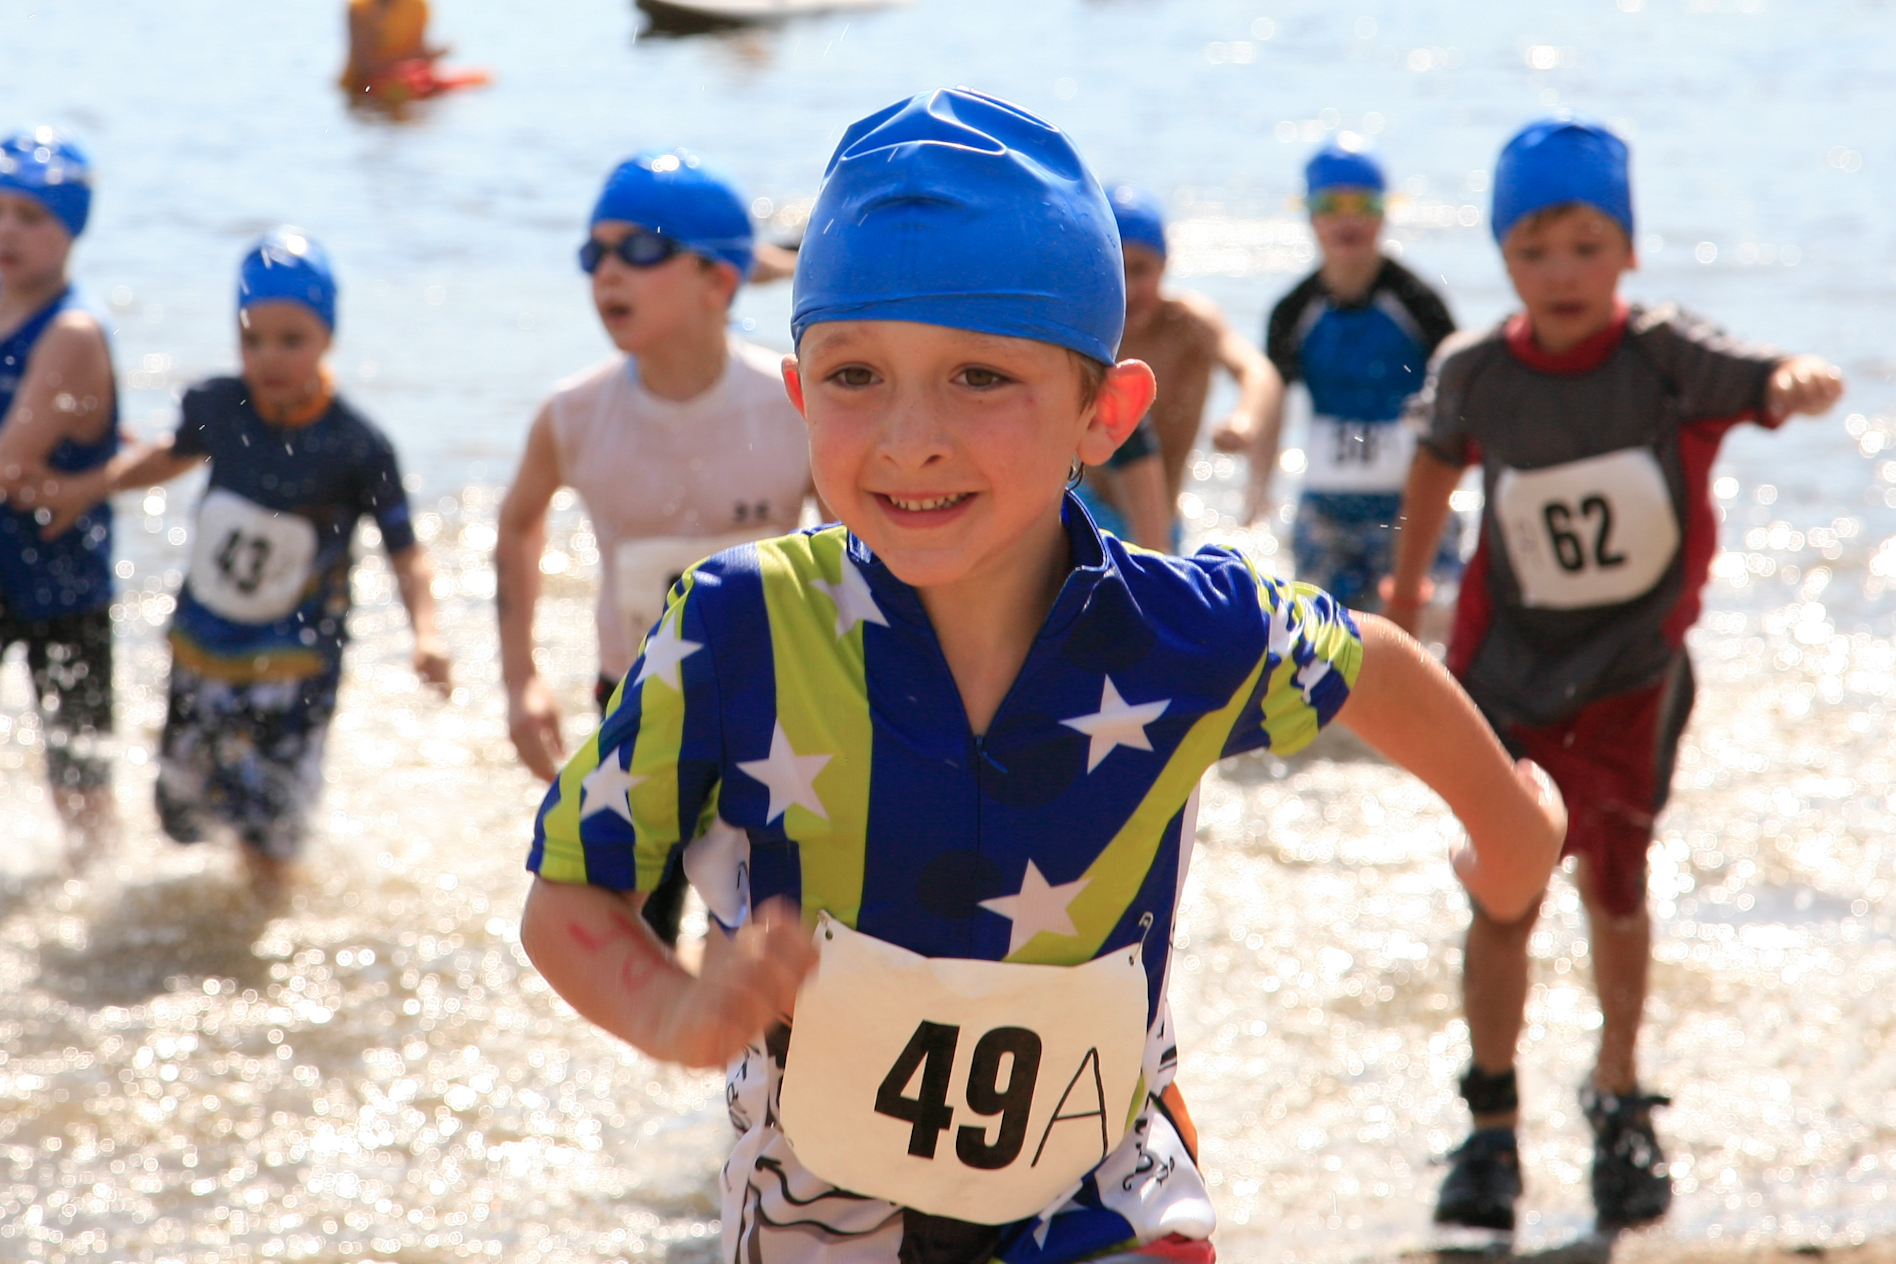 How to Make Fitness Fun for Kids